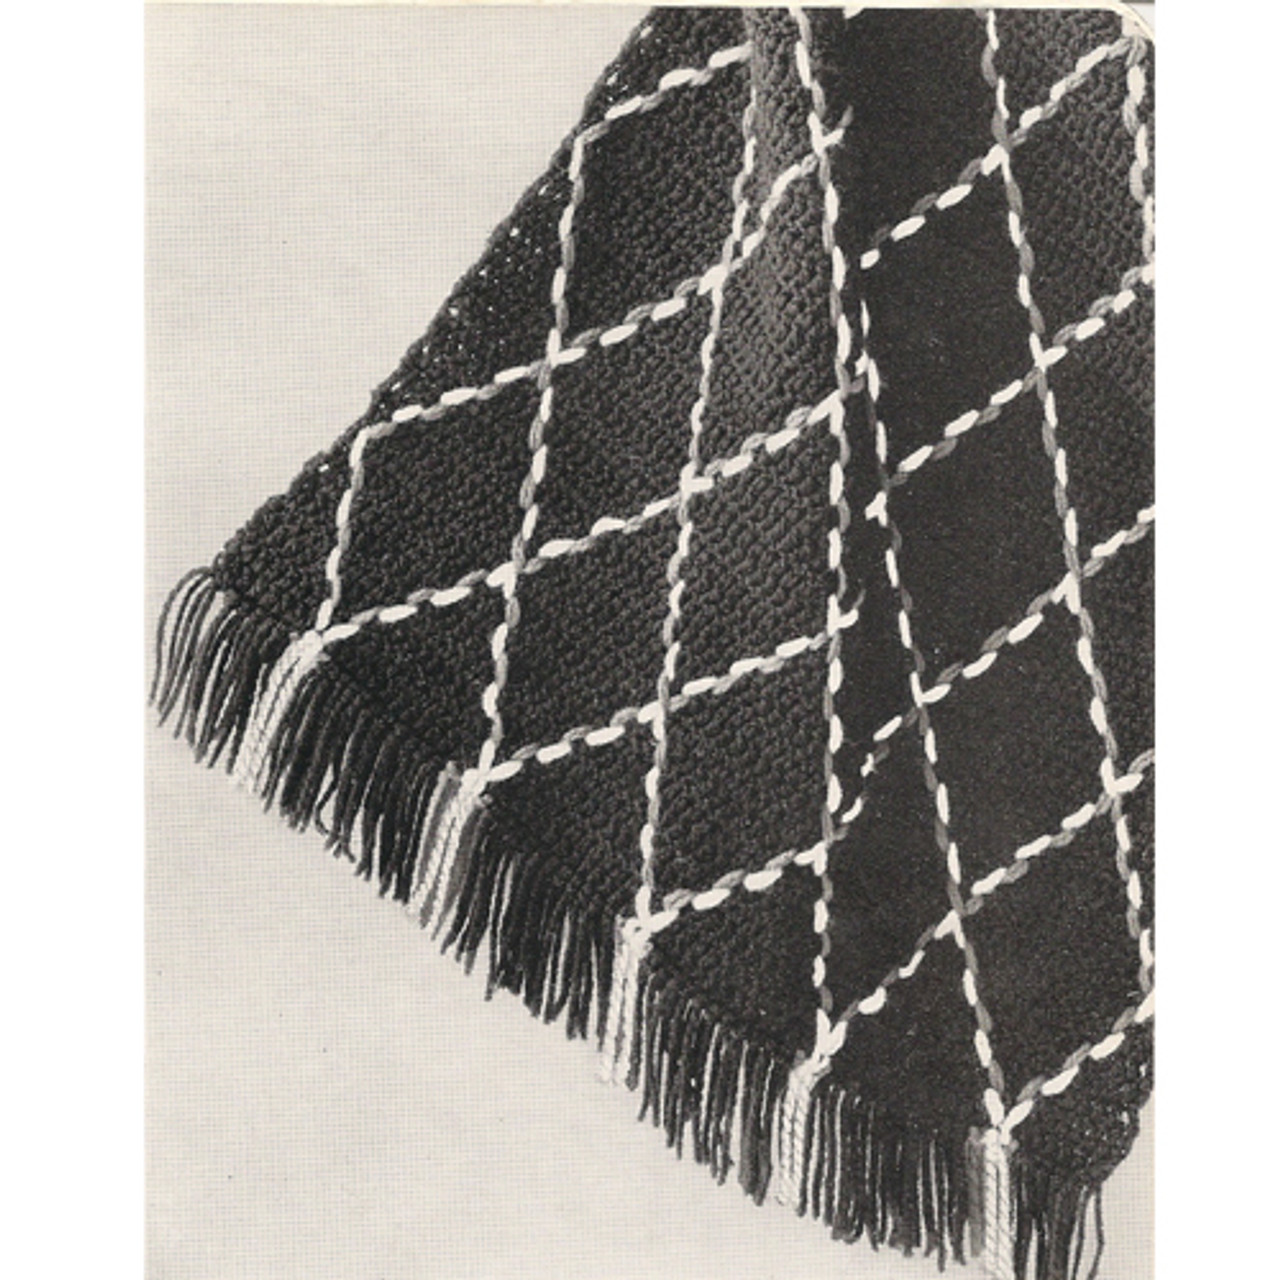 Woven Carriage Cover Pattern